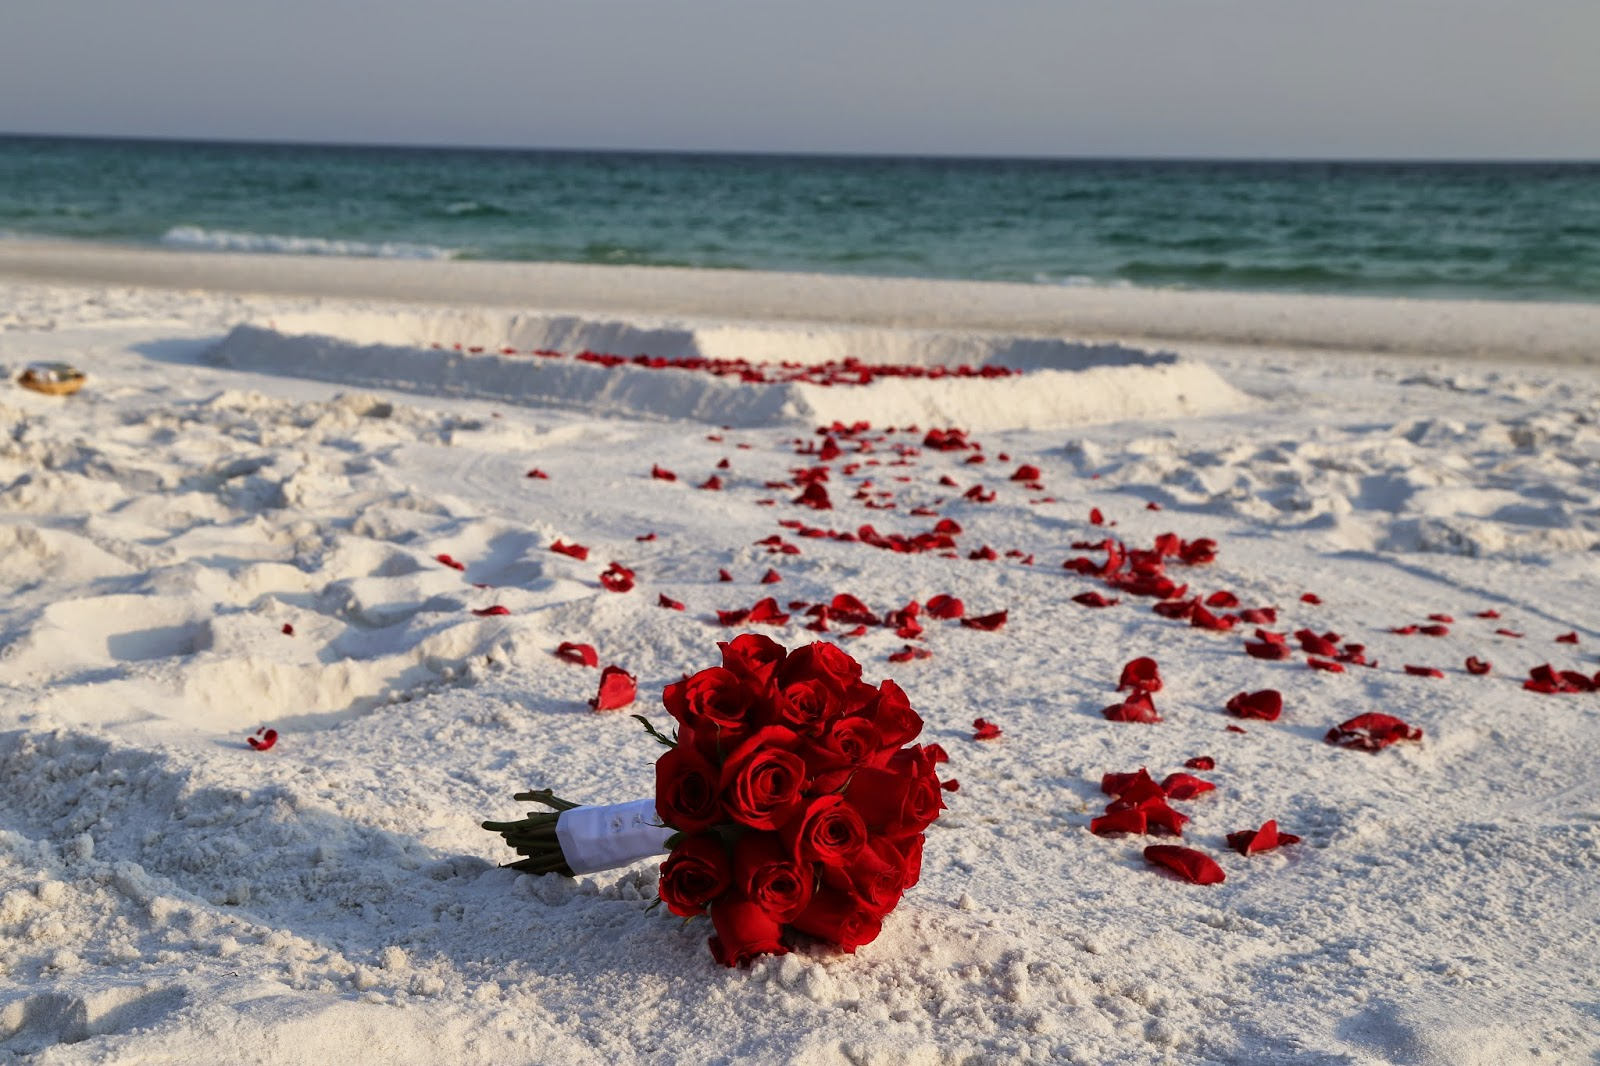 heart in the sand with rose petals and red rose bouquet for beach wedding in Destin, Florida